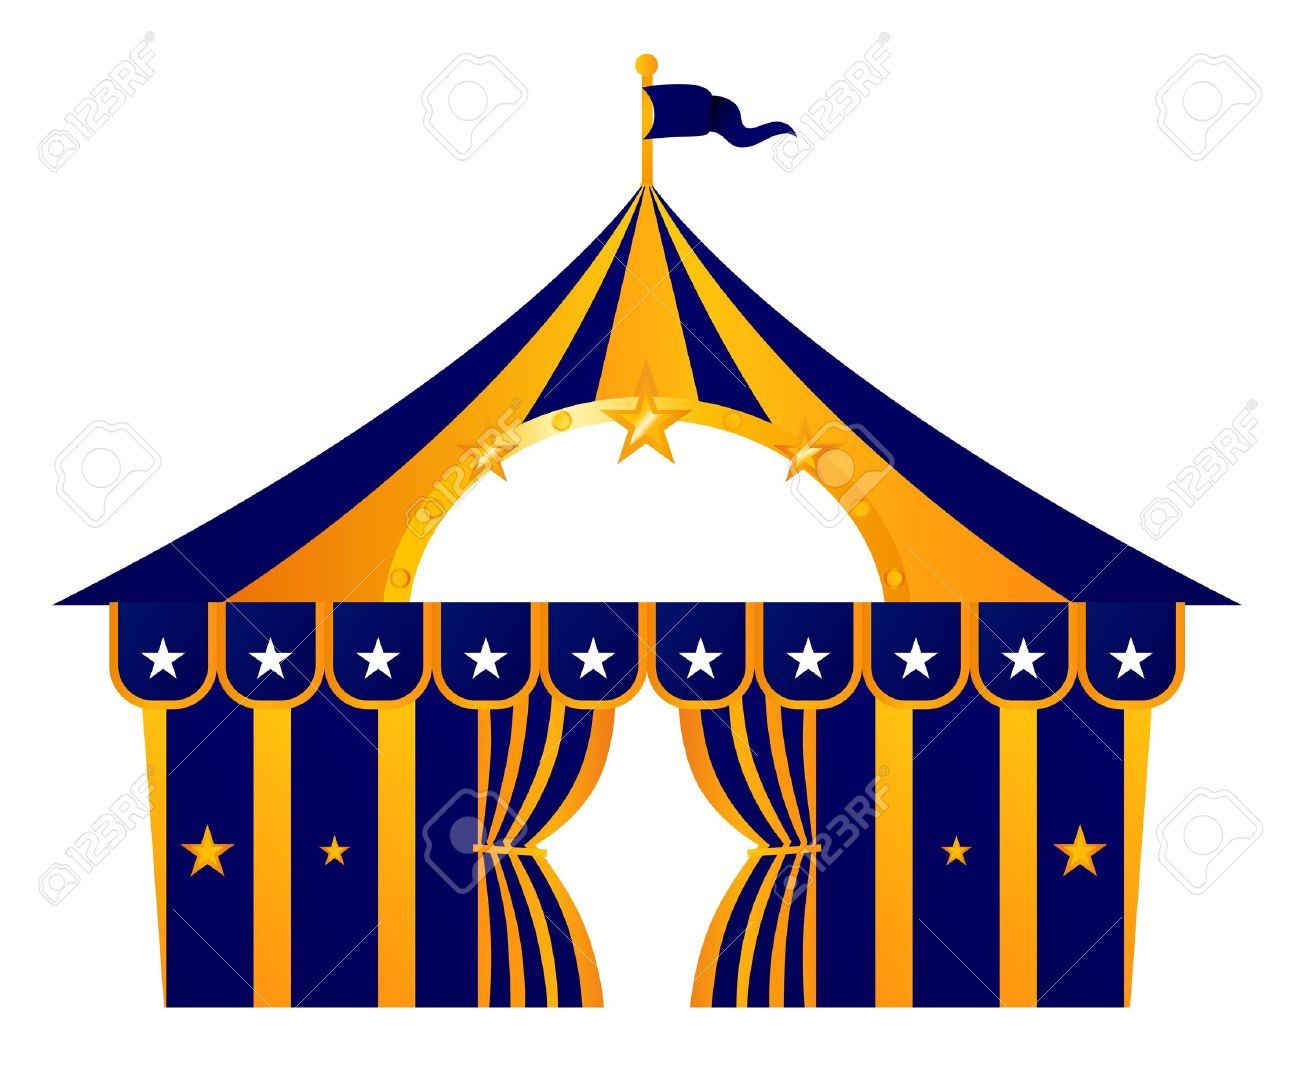 Stylized Circus Tent. Vector Illustration Stock Vector - 15211476